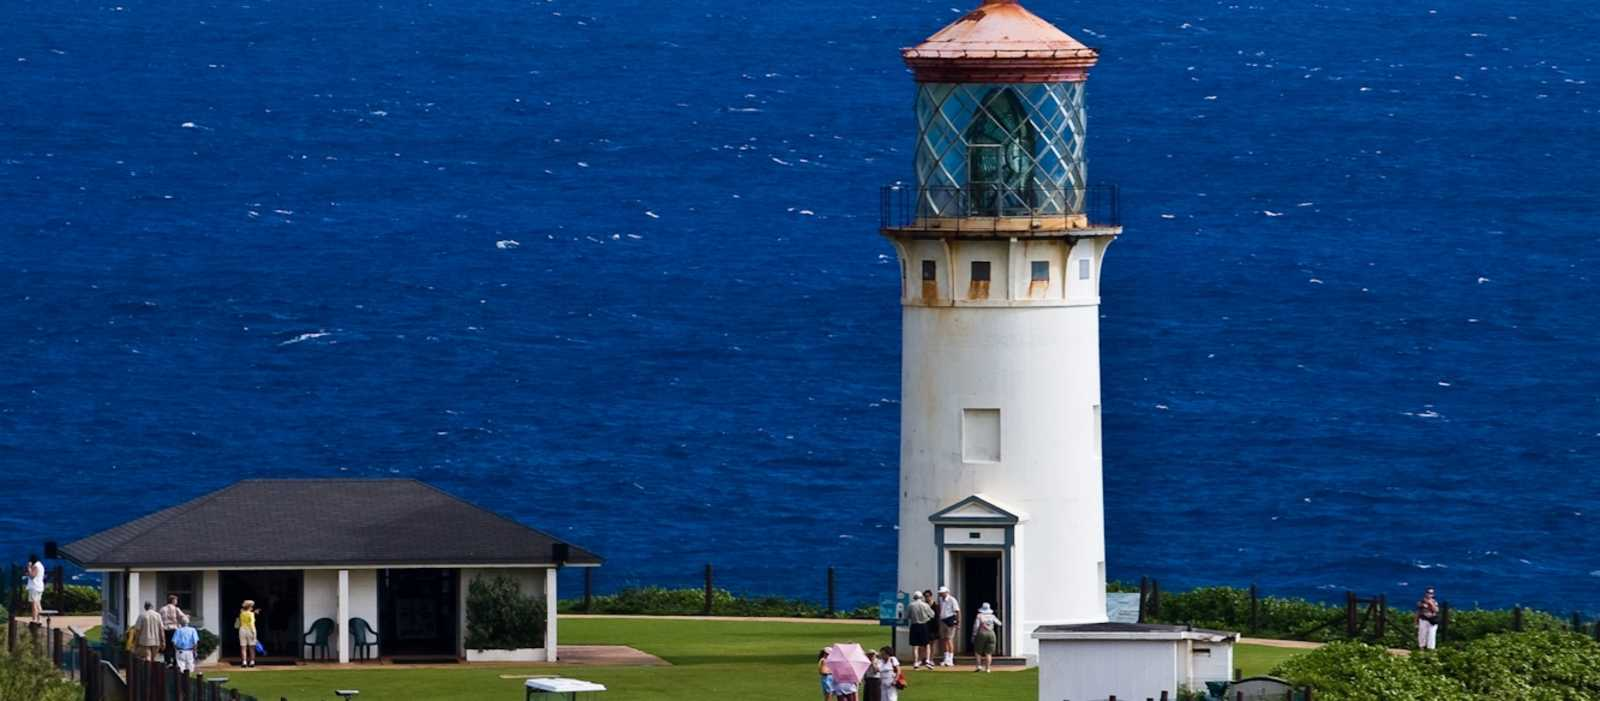 Kilauea Point Lighthouse auf Kauai